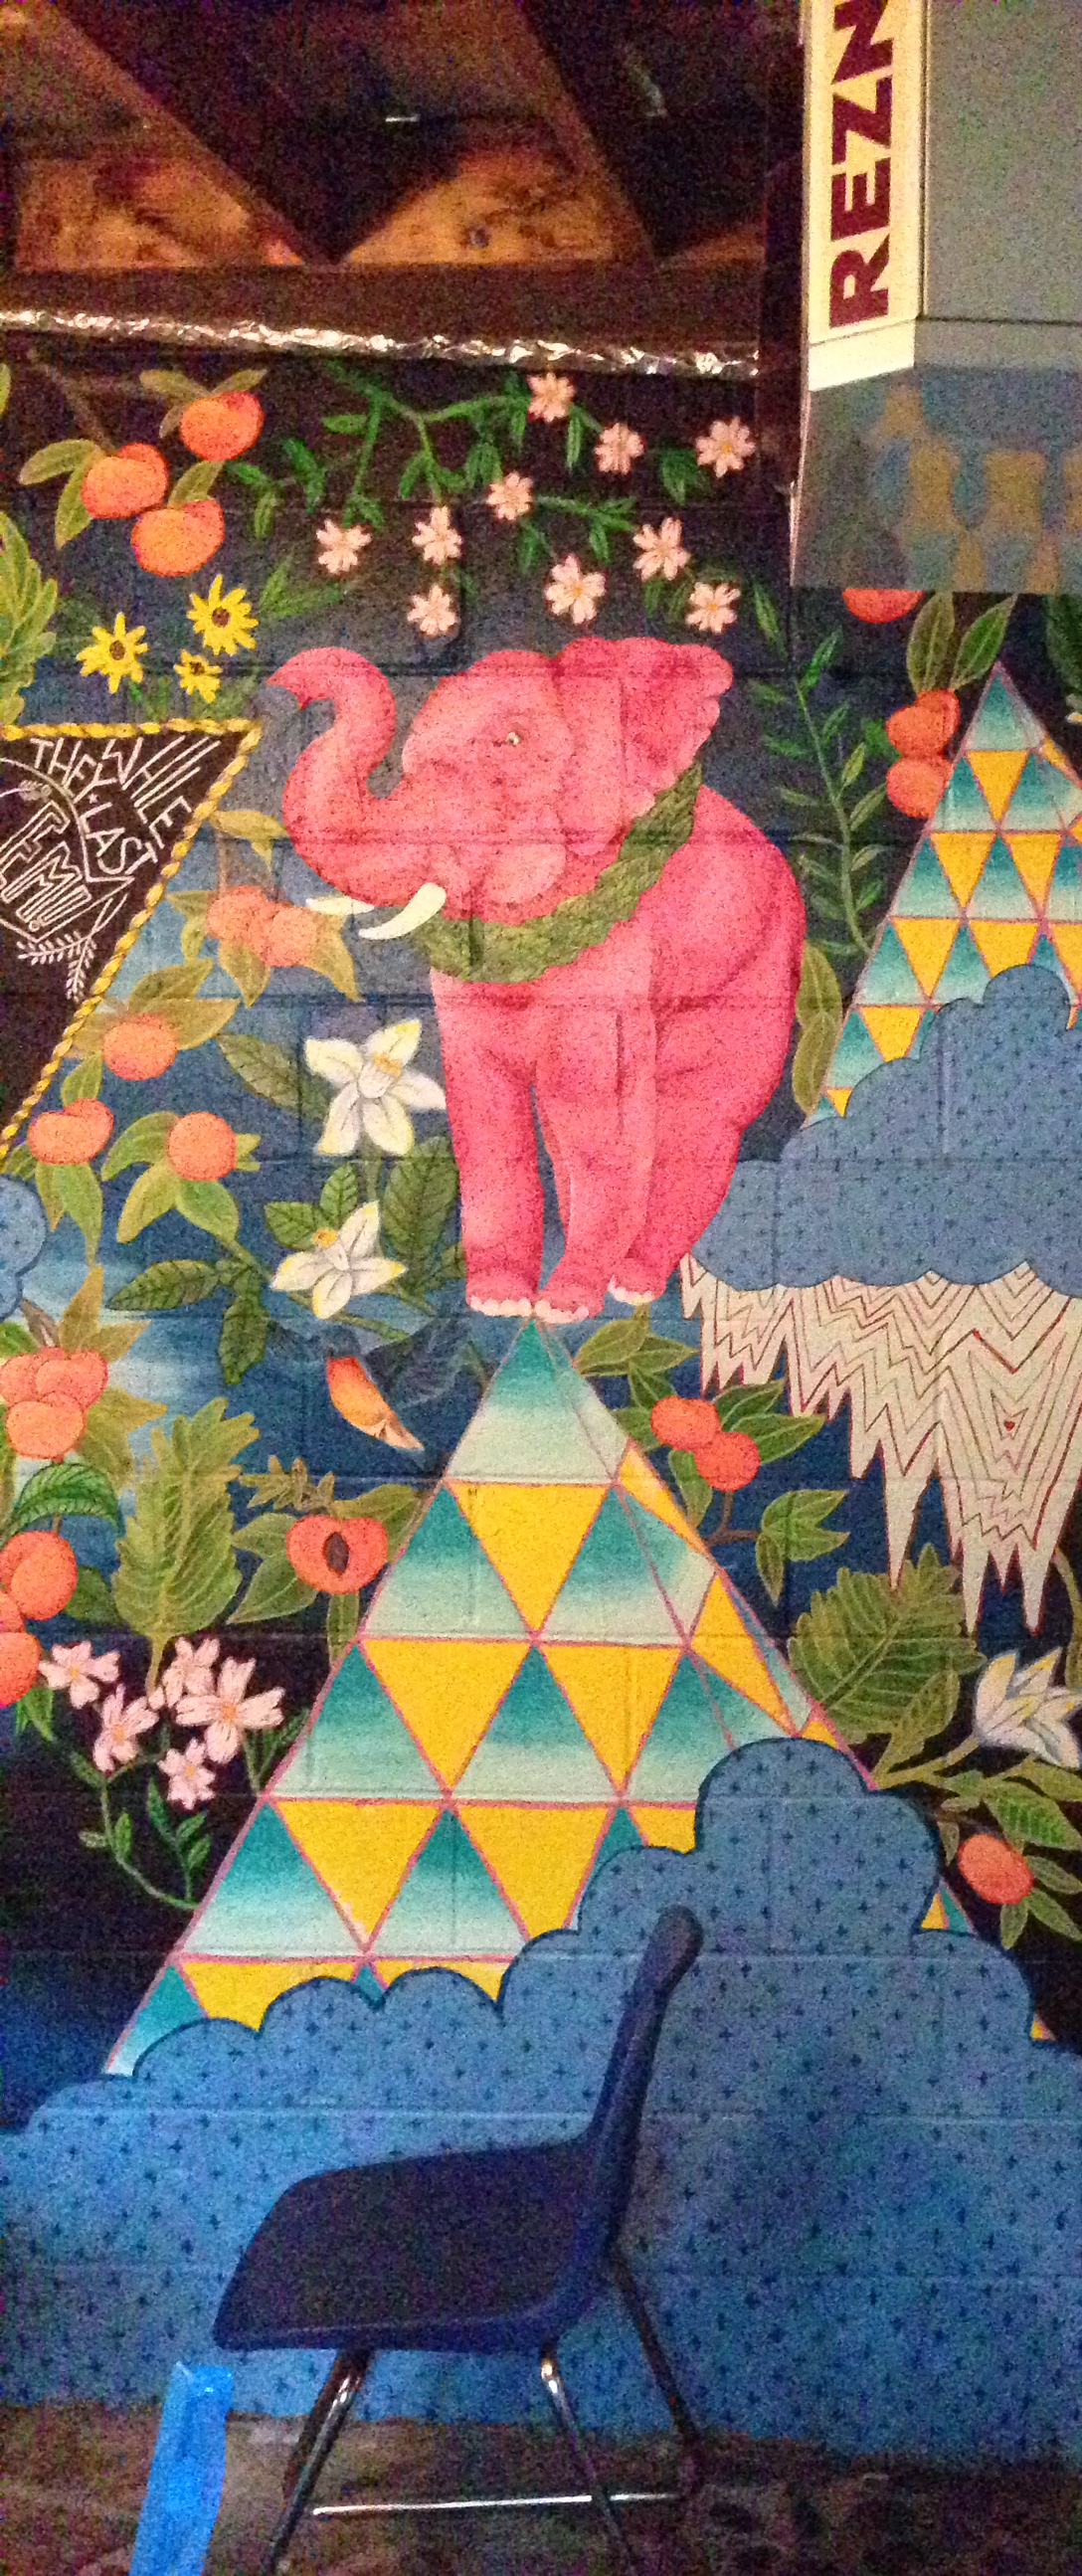 Mural at Ria's Bluebird by Lydia Walls: detail of pink elephant